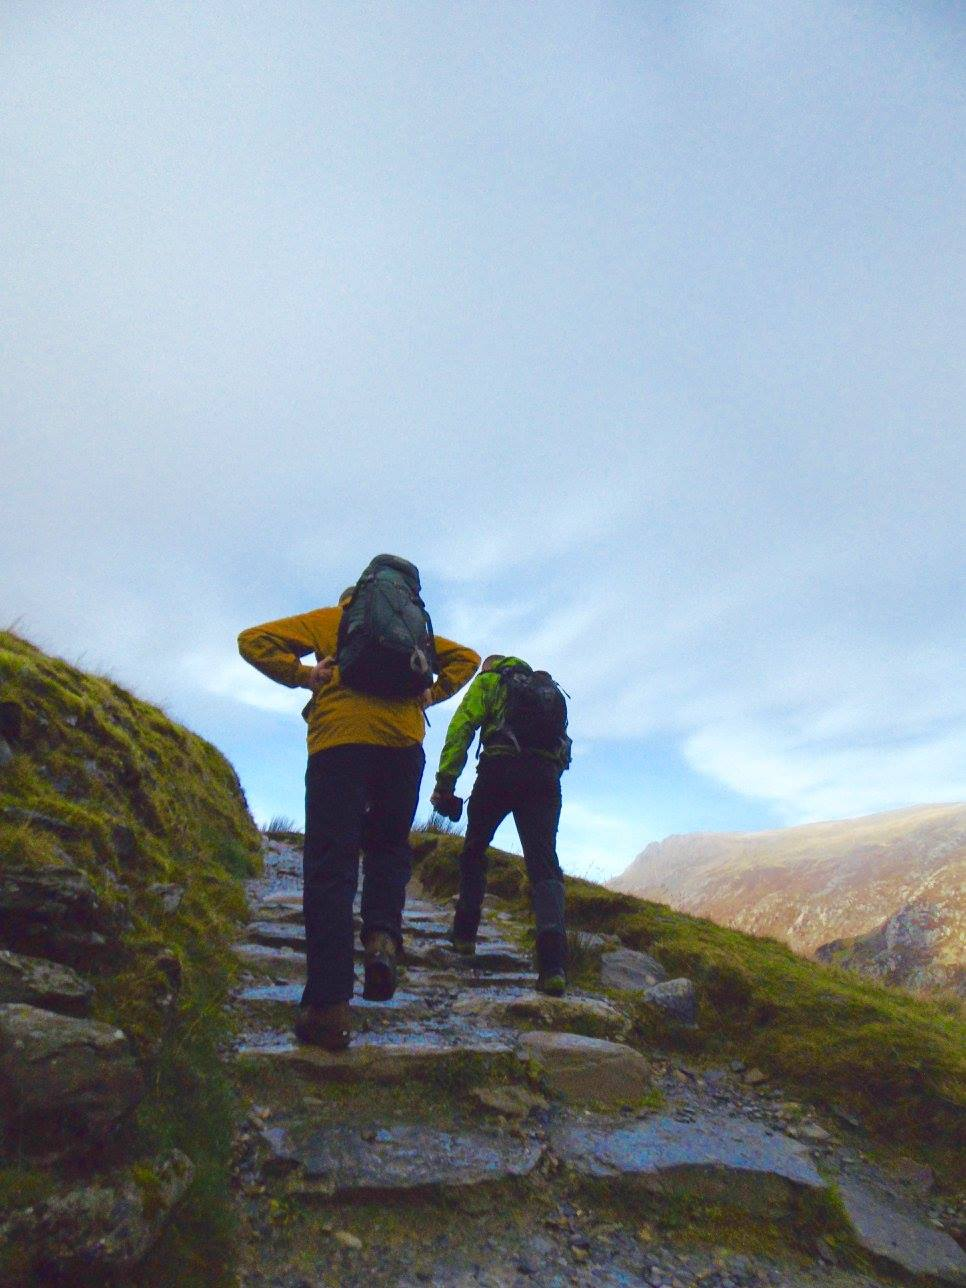 At the start of the Pyg track in Snowdon